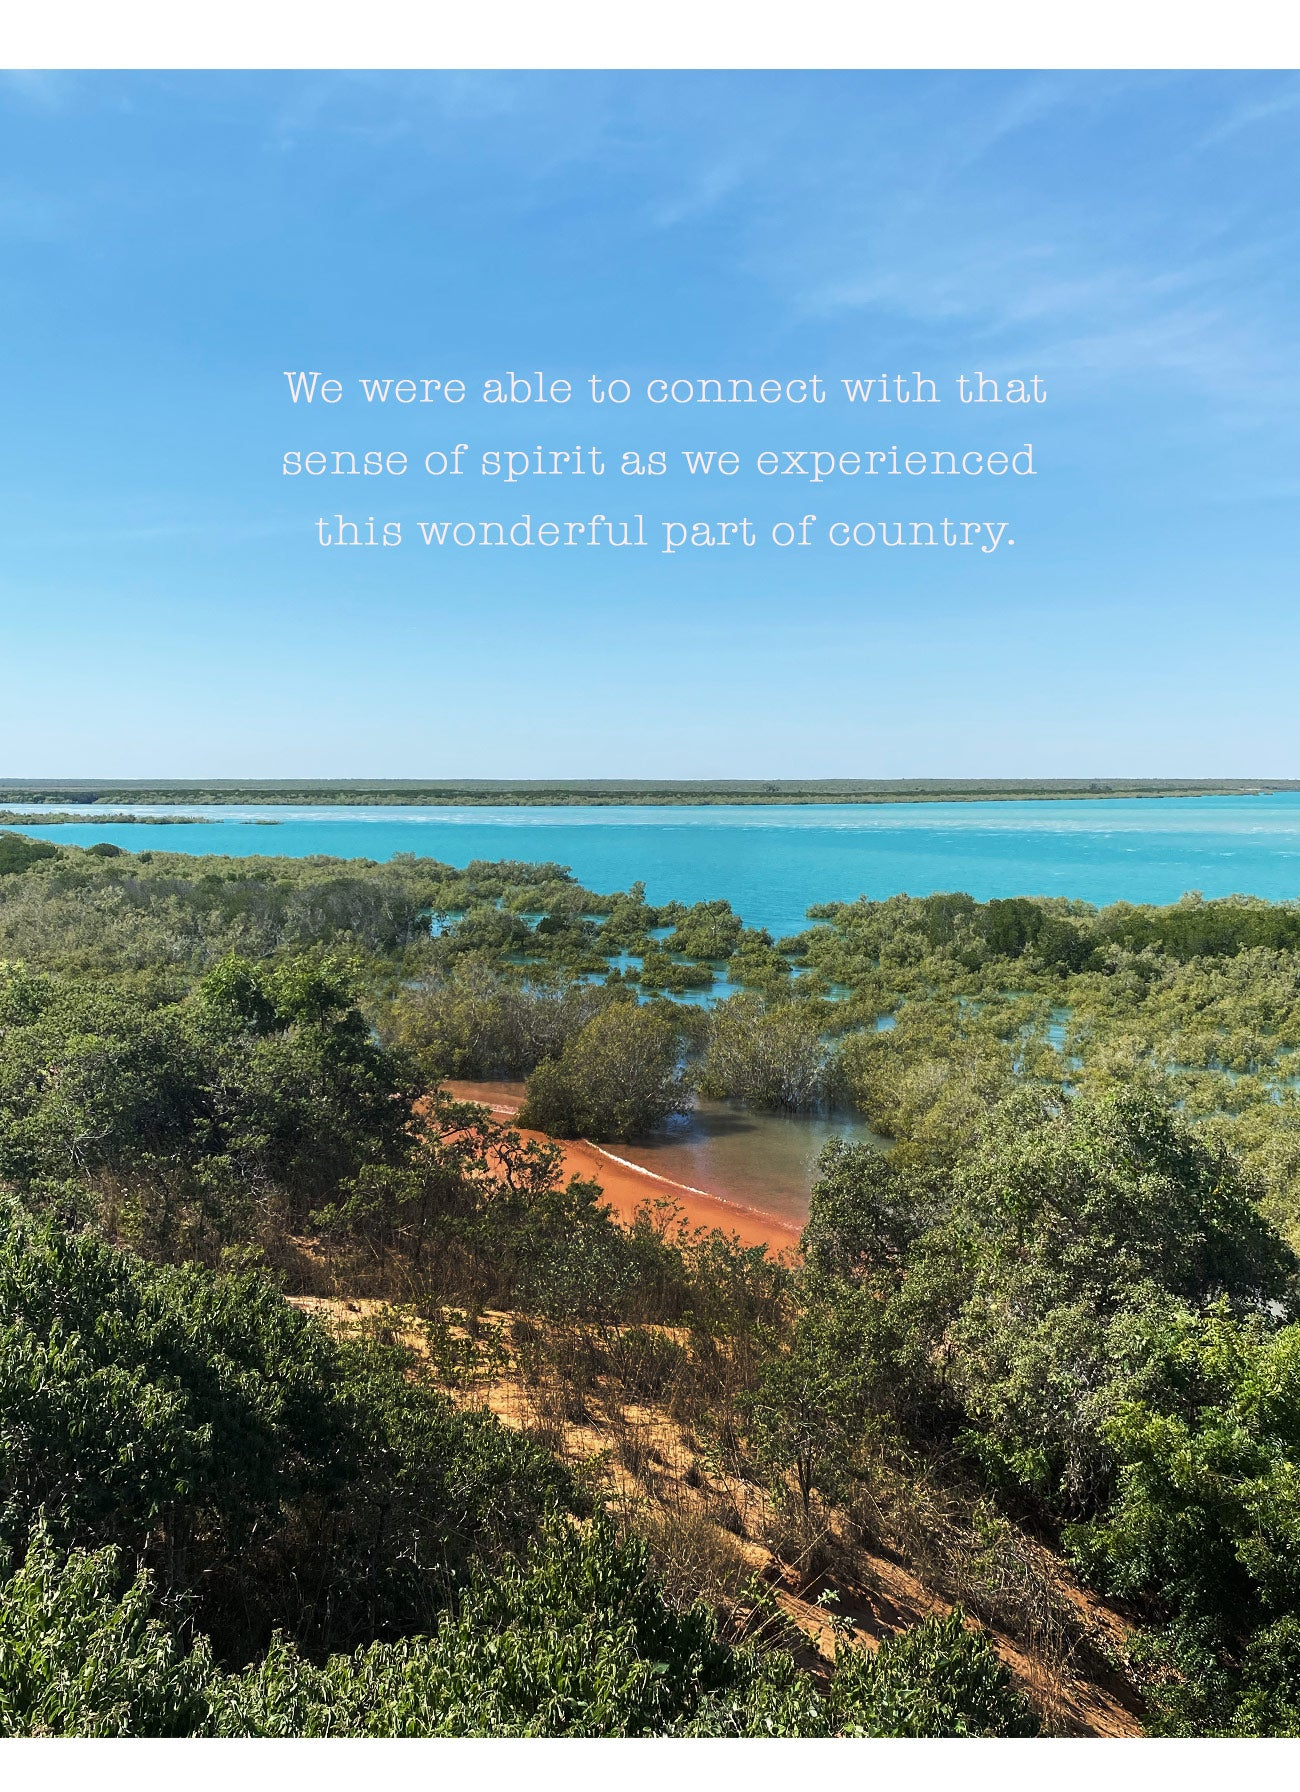 Connecting spiritually with country at Cape Leveque in Western Australia